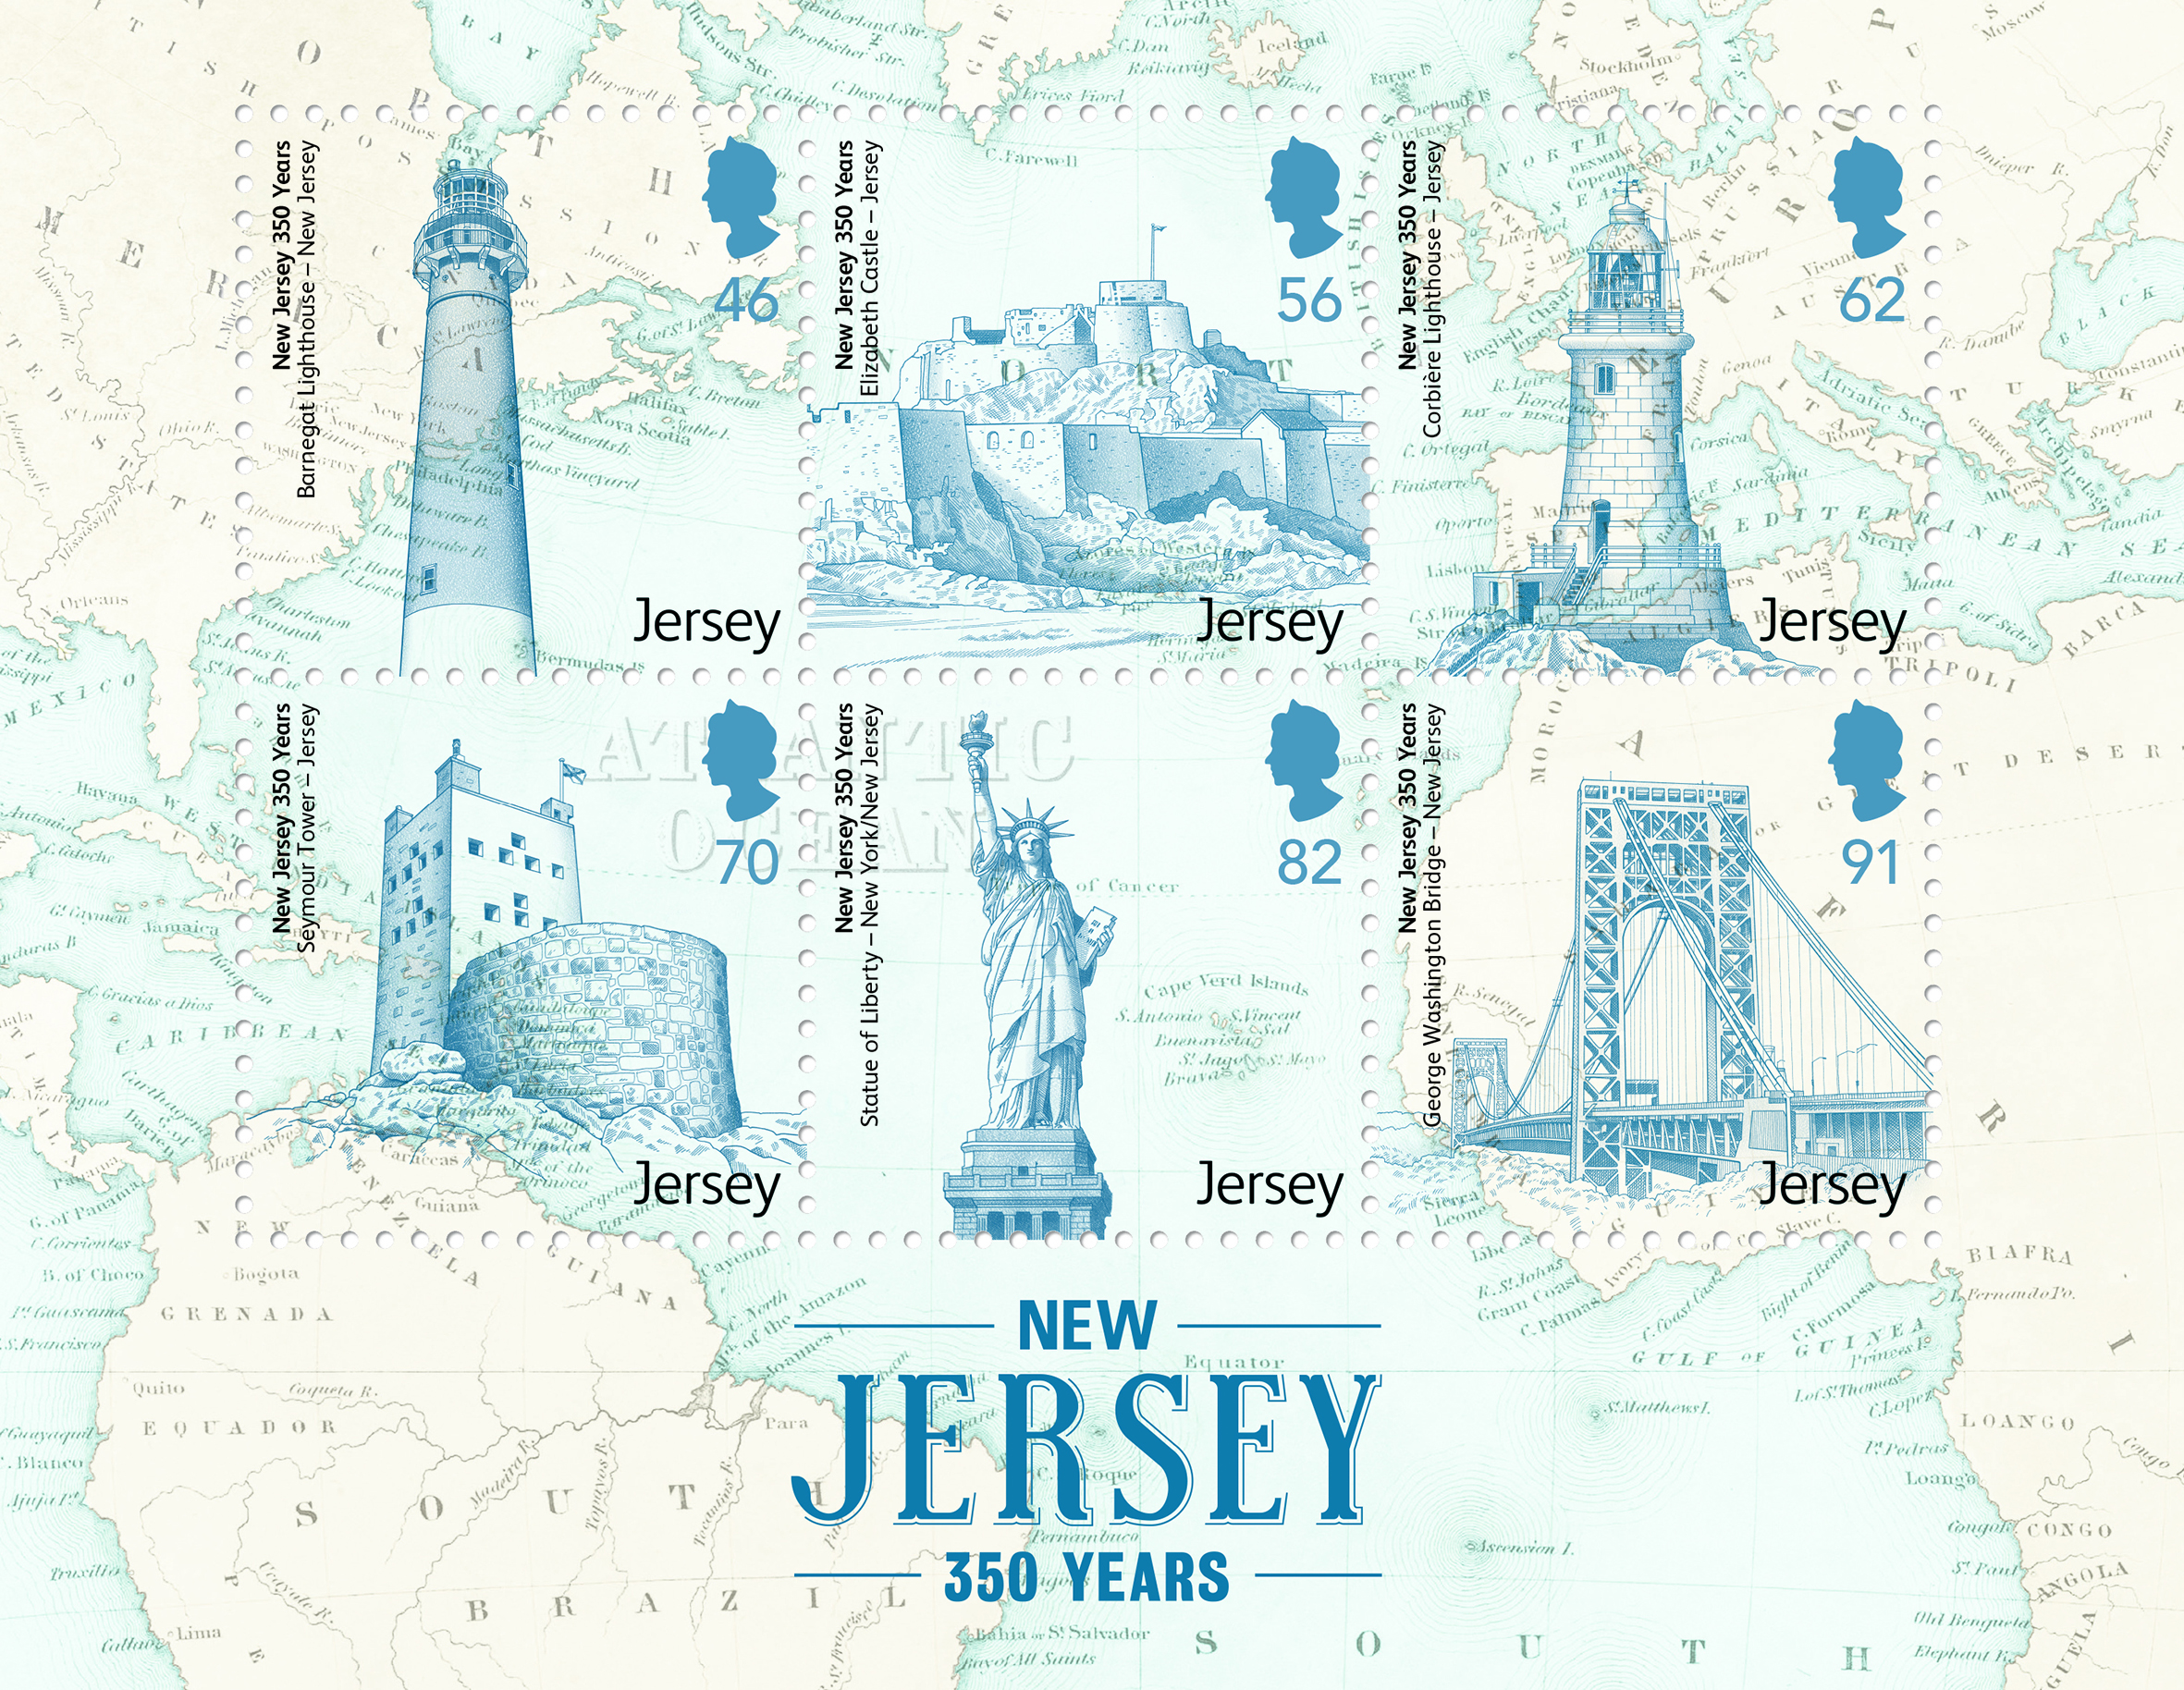 Jersey Stamps Focus On New